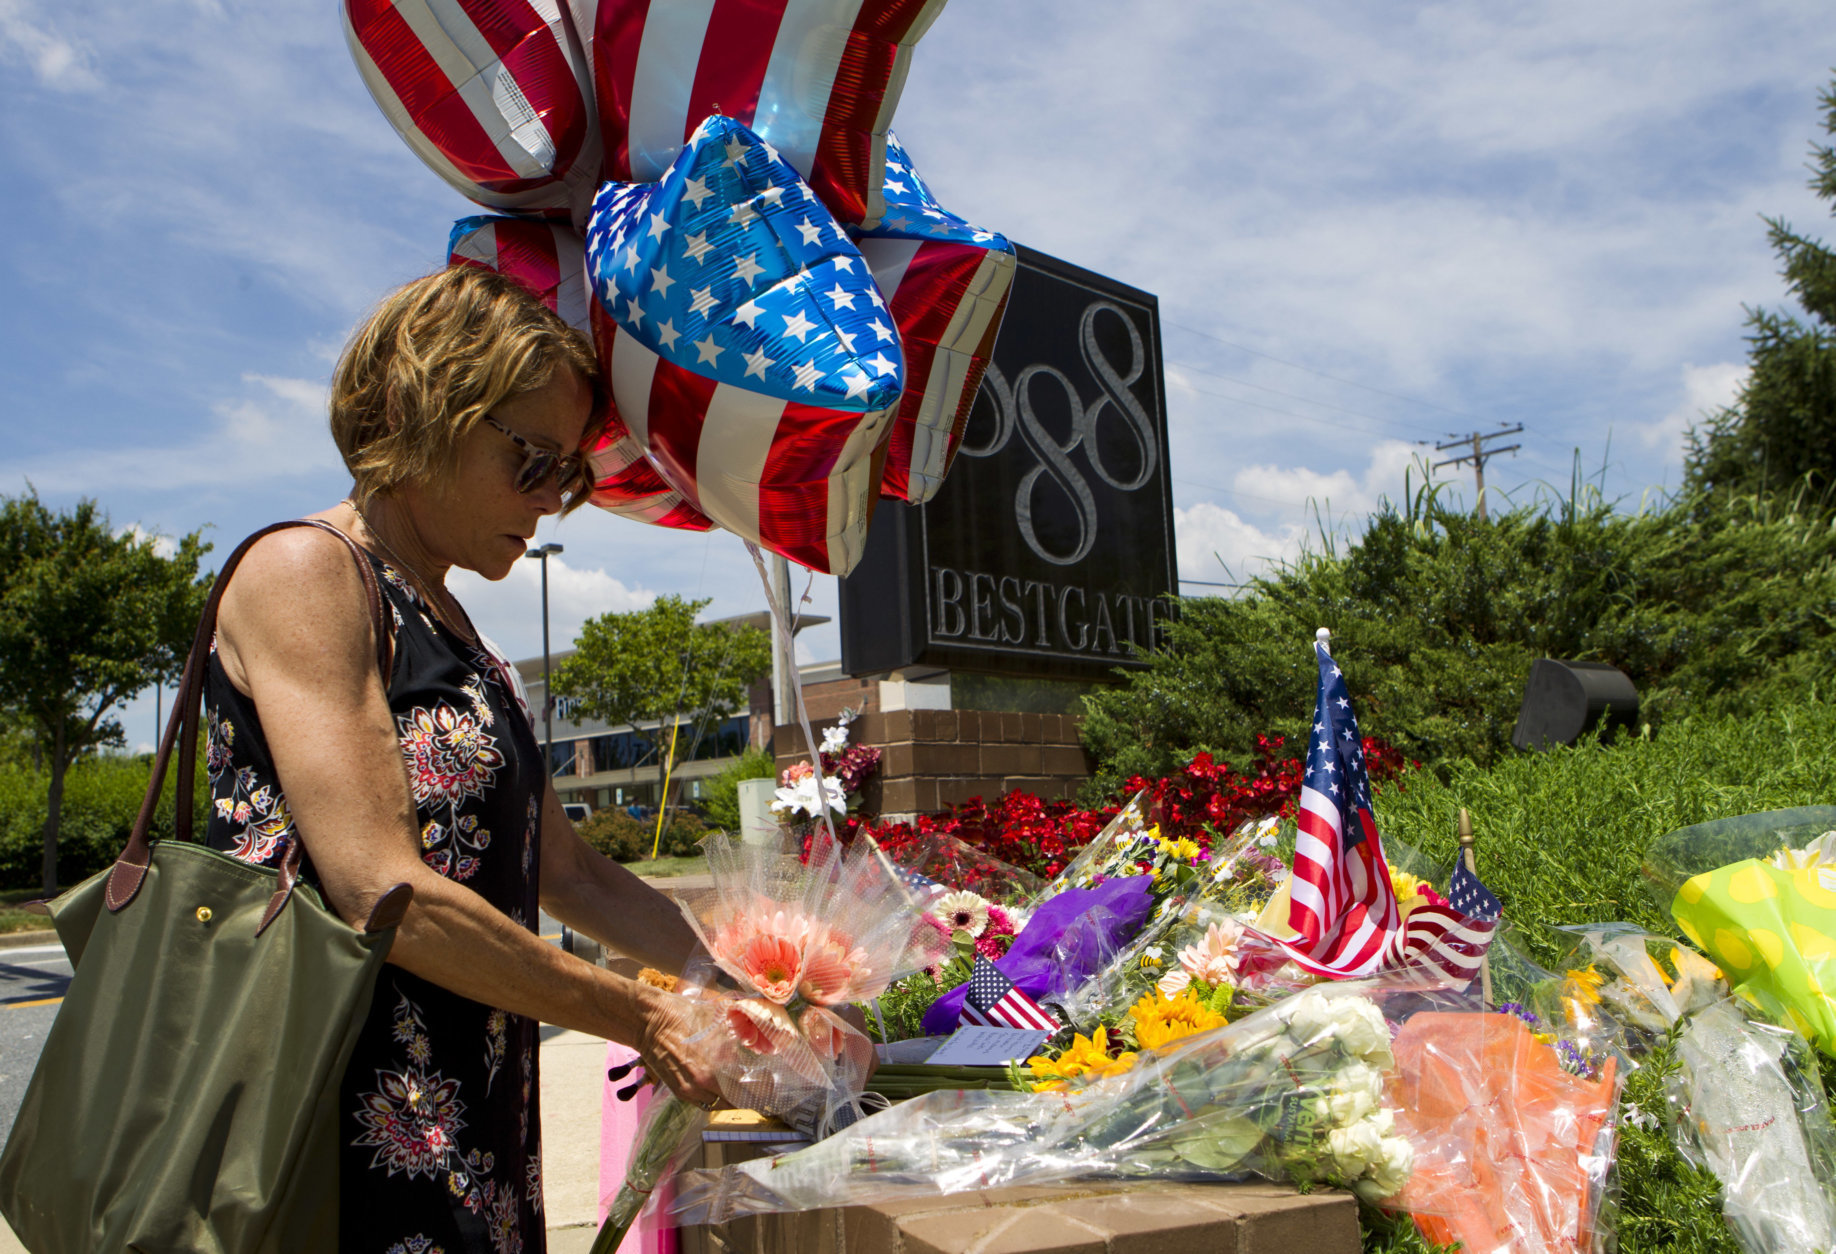 Neighbor Elly M. Tierney places flowers at a makeshift memorial at the scene outside the office building housing The Capital Gazette newspaper in Annapolis, Md., on Friday, June 29, 2018. A man armed with smoke grenades and a shotgun attacked journalists in the building Thursday, killing several people before police quickly stormed the building and arrested him, police and witnesses said. (AP Photo/Jose Luis Magana)